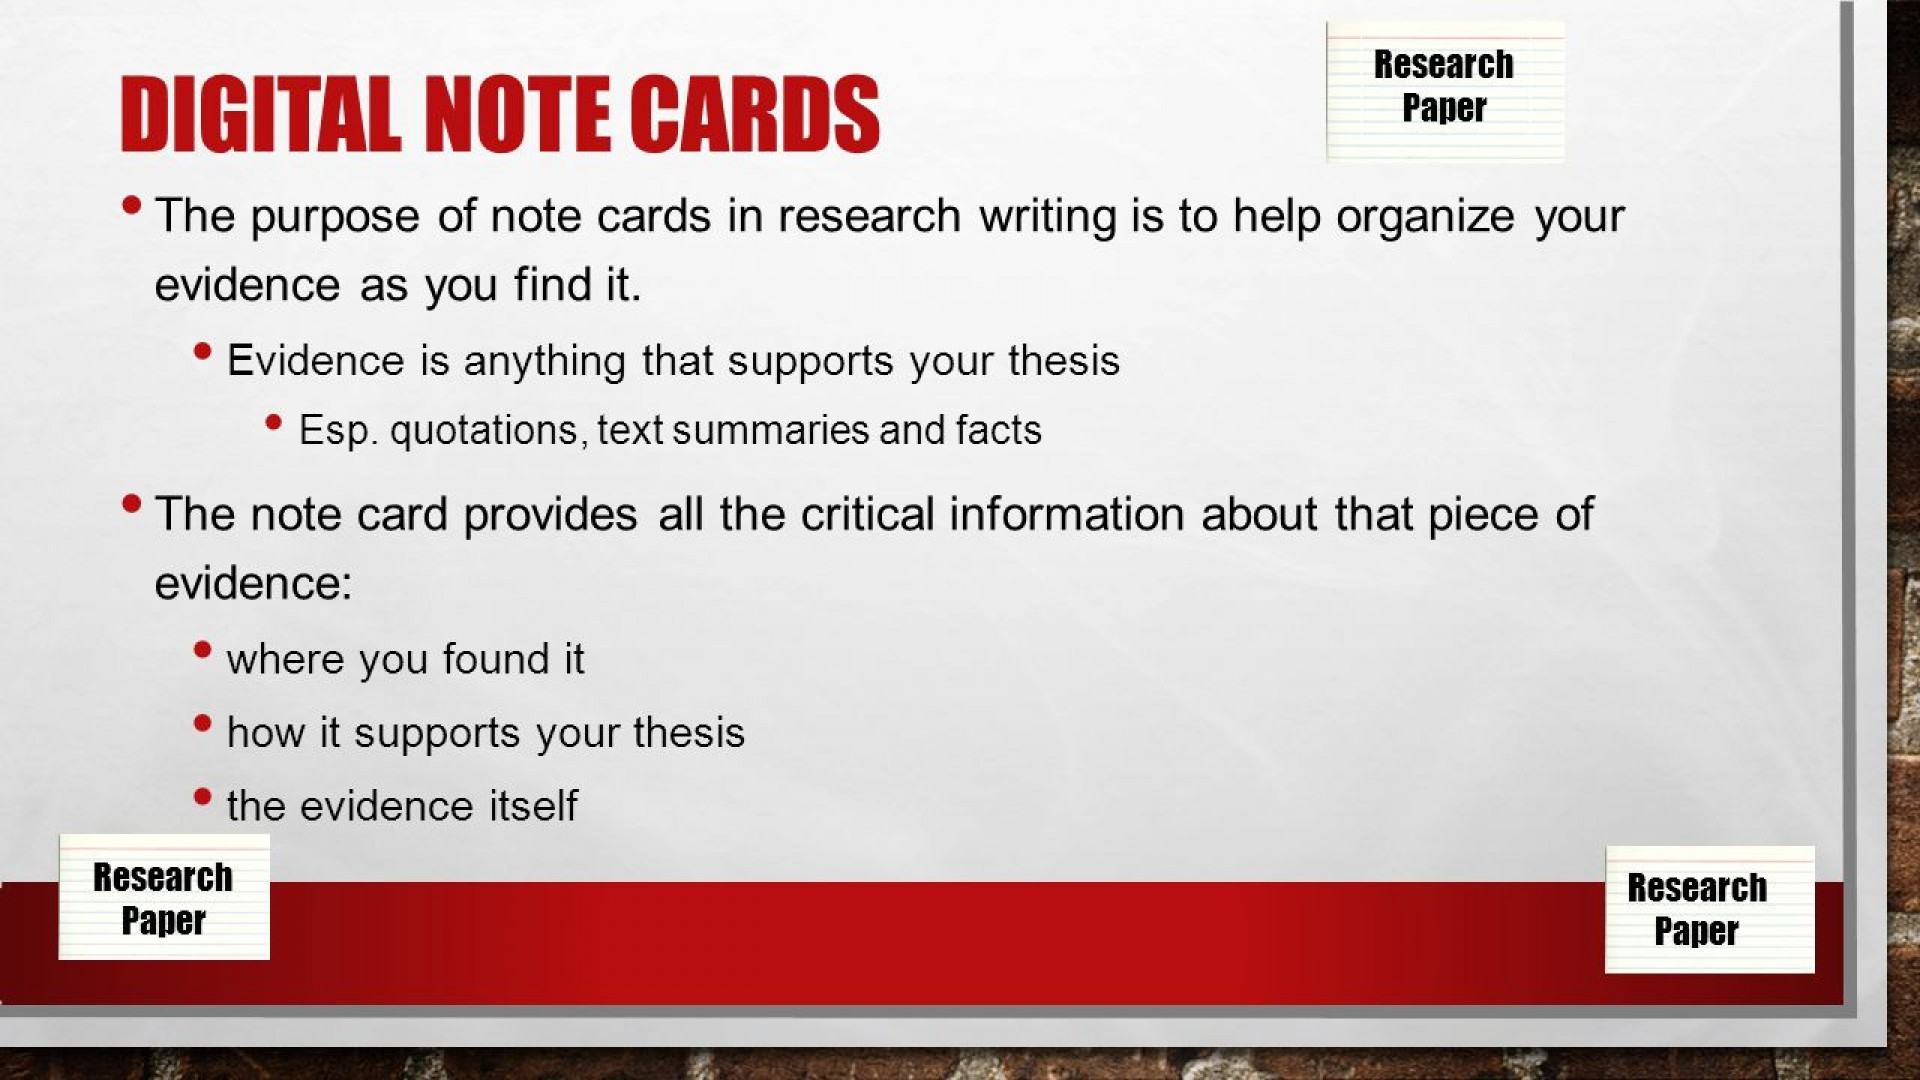 003 Slide 2 Research Paper Note Cards Rare For Formatting Notecards Papers Mla Digital 1920